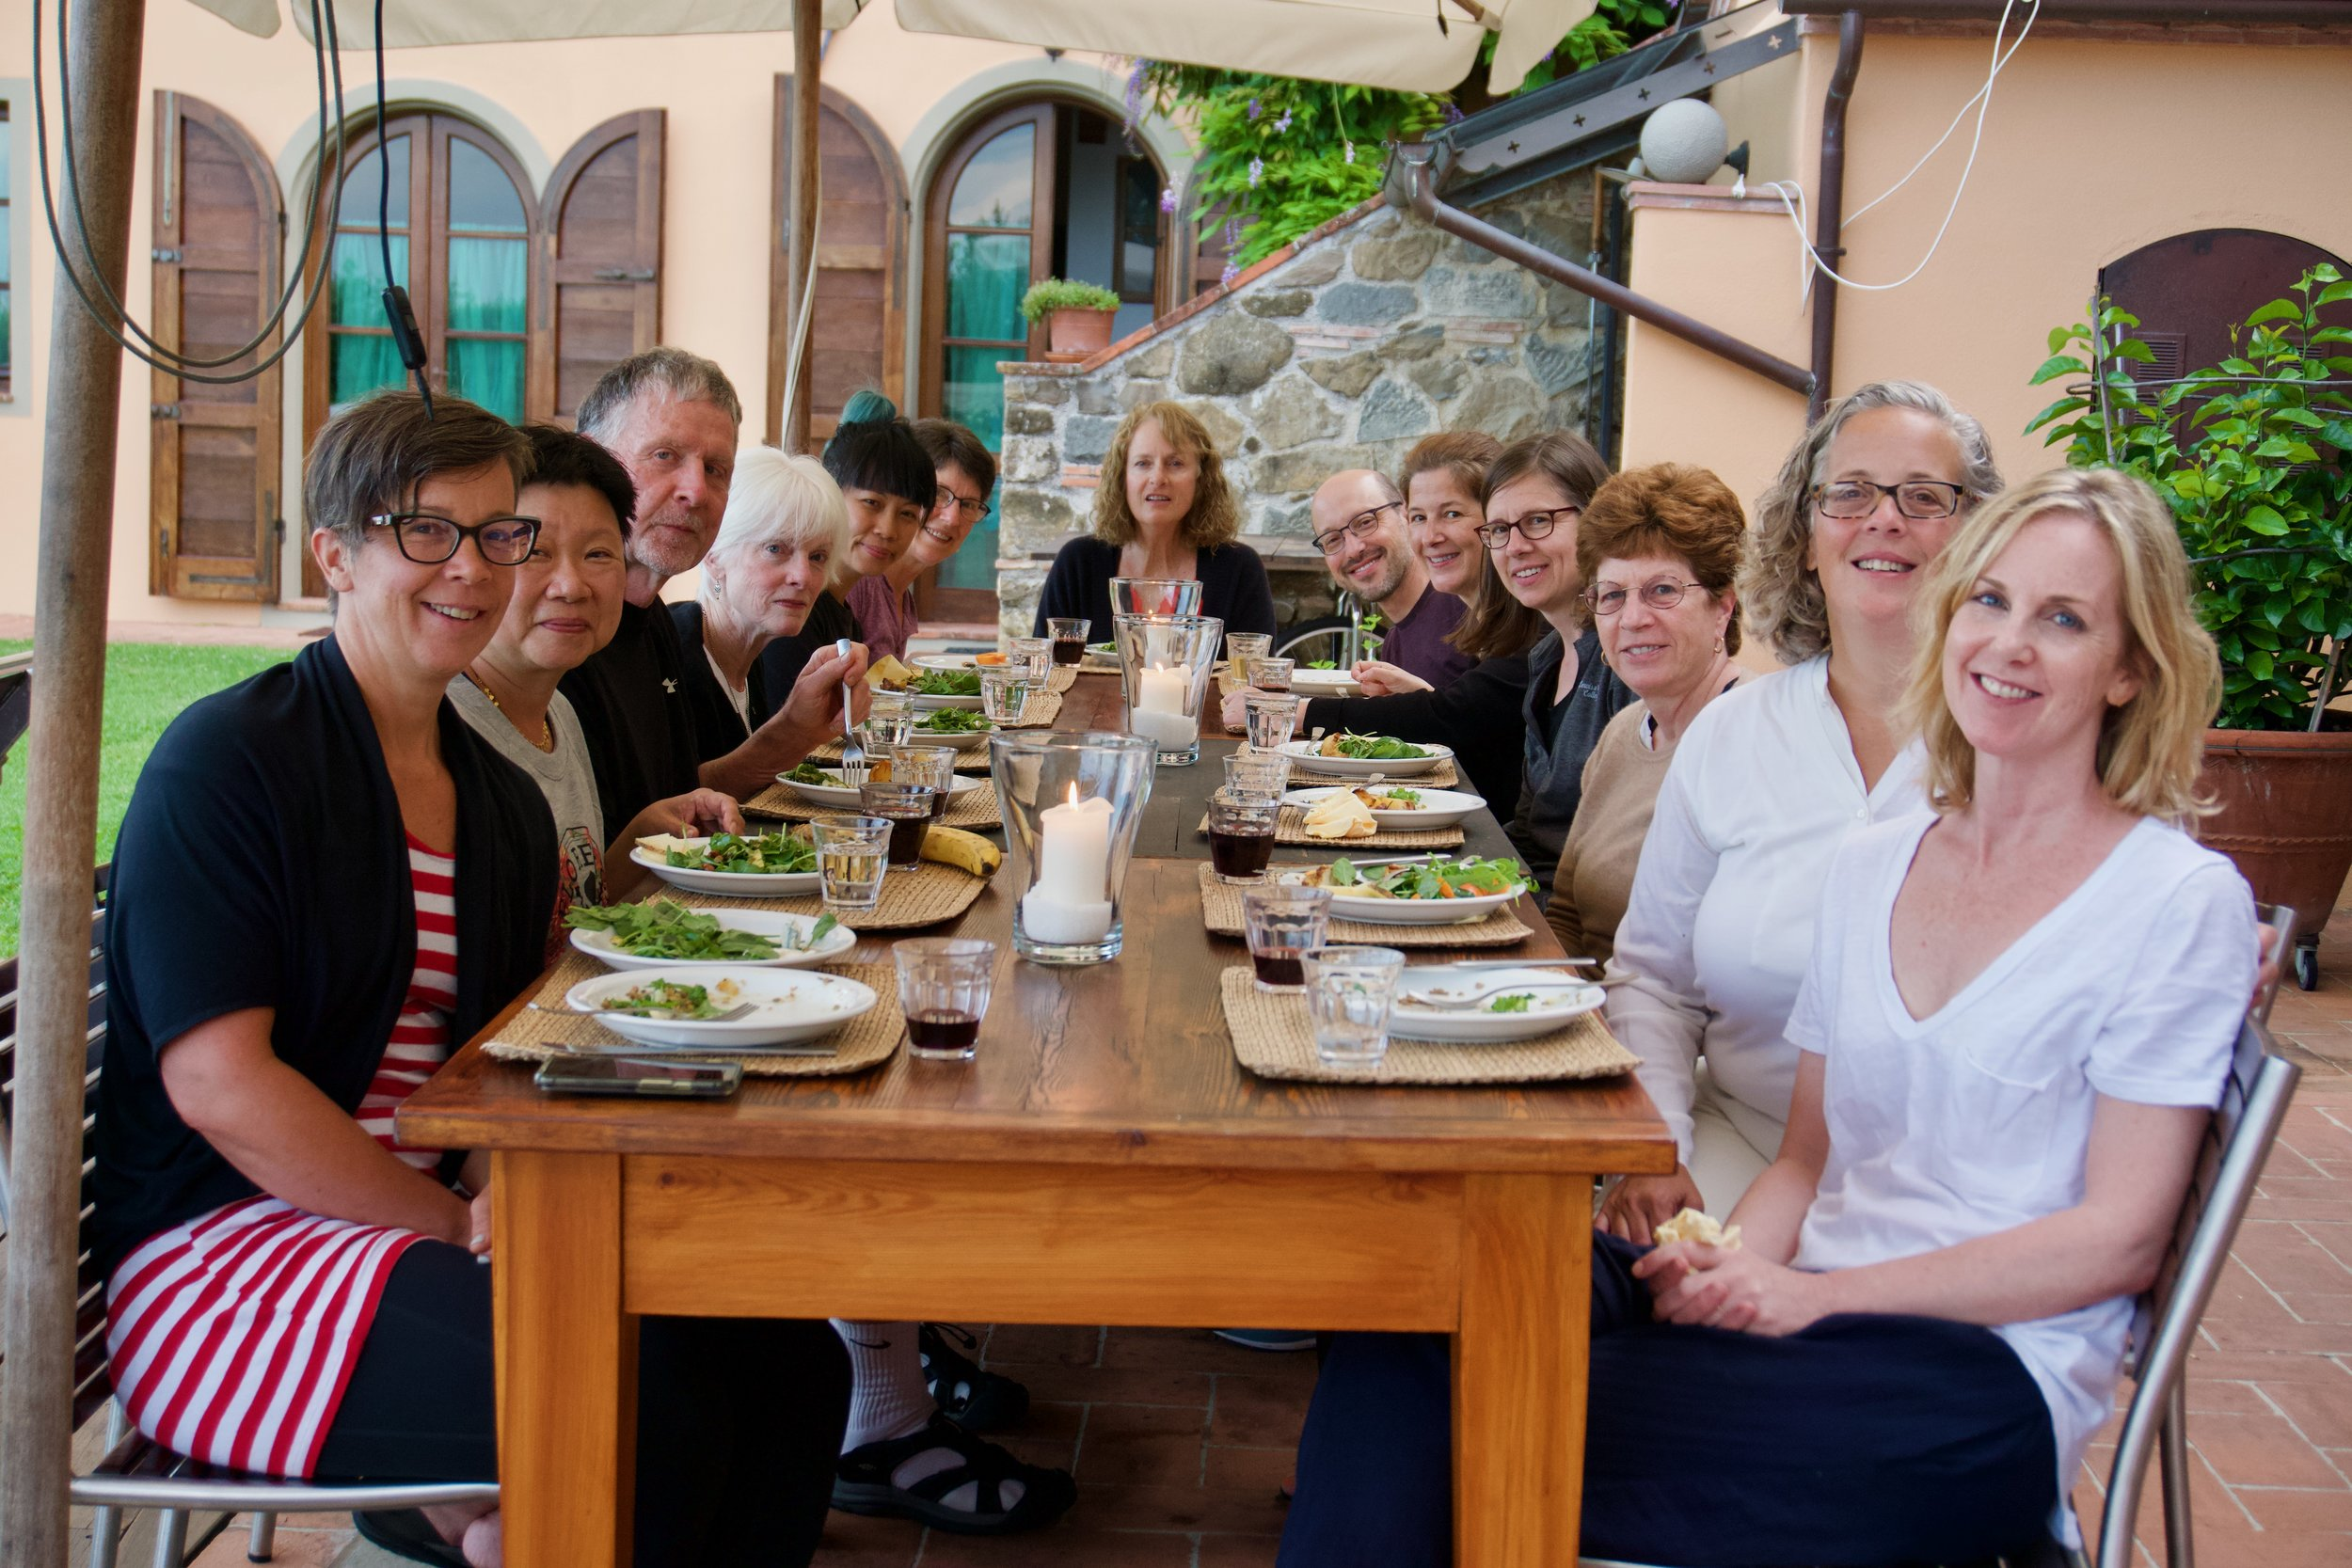 Every night our group eats a gorgeous vegetarian buffet dinner on our patio.